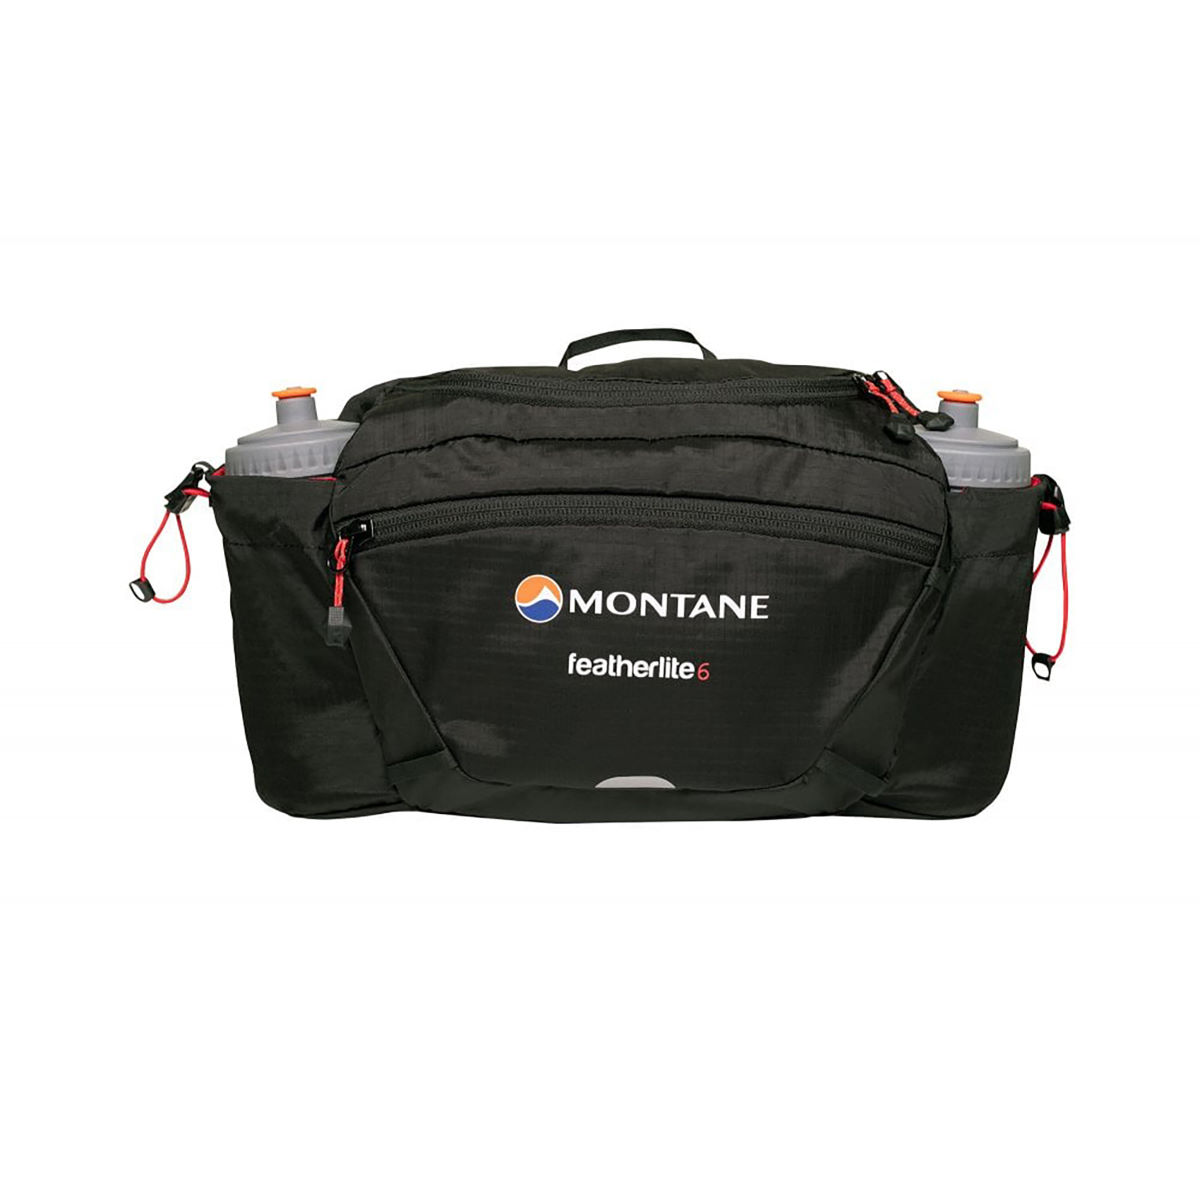 Montane Featherlite 6 Hydration Pack   Waist Bags